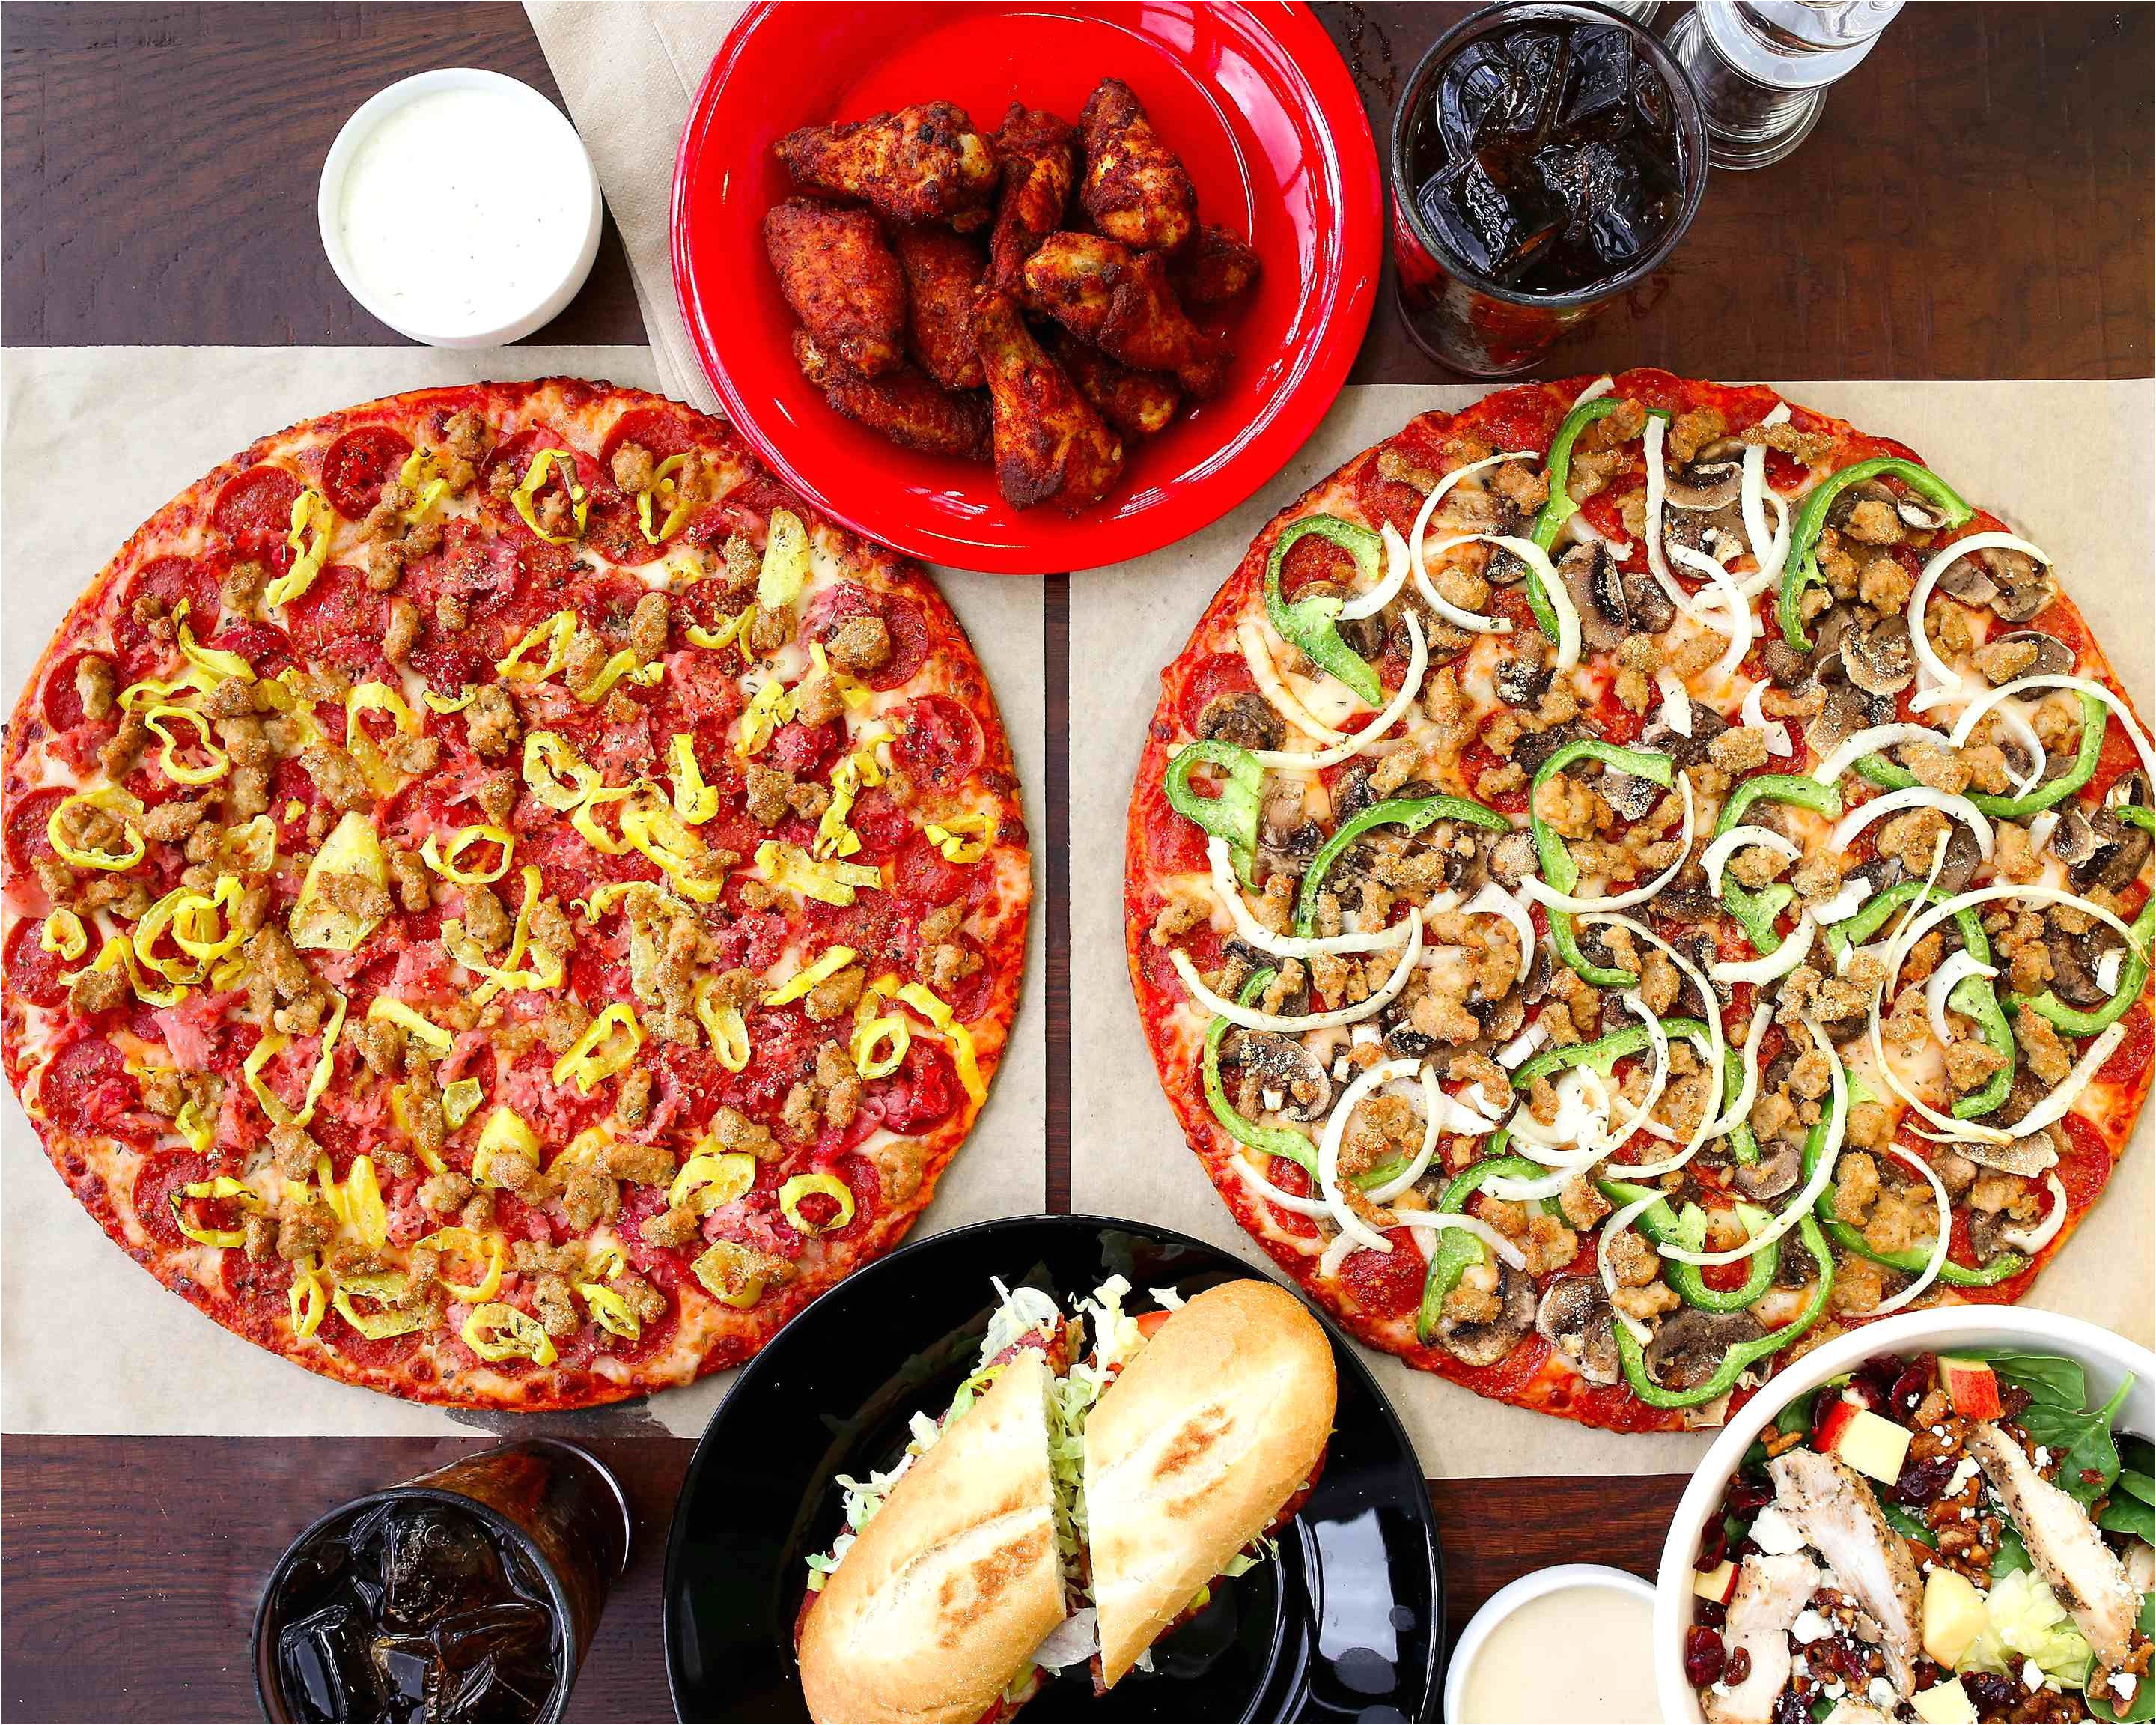 Chinese Food Midland Tx Delivery   AdinaPorter